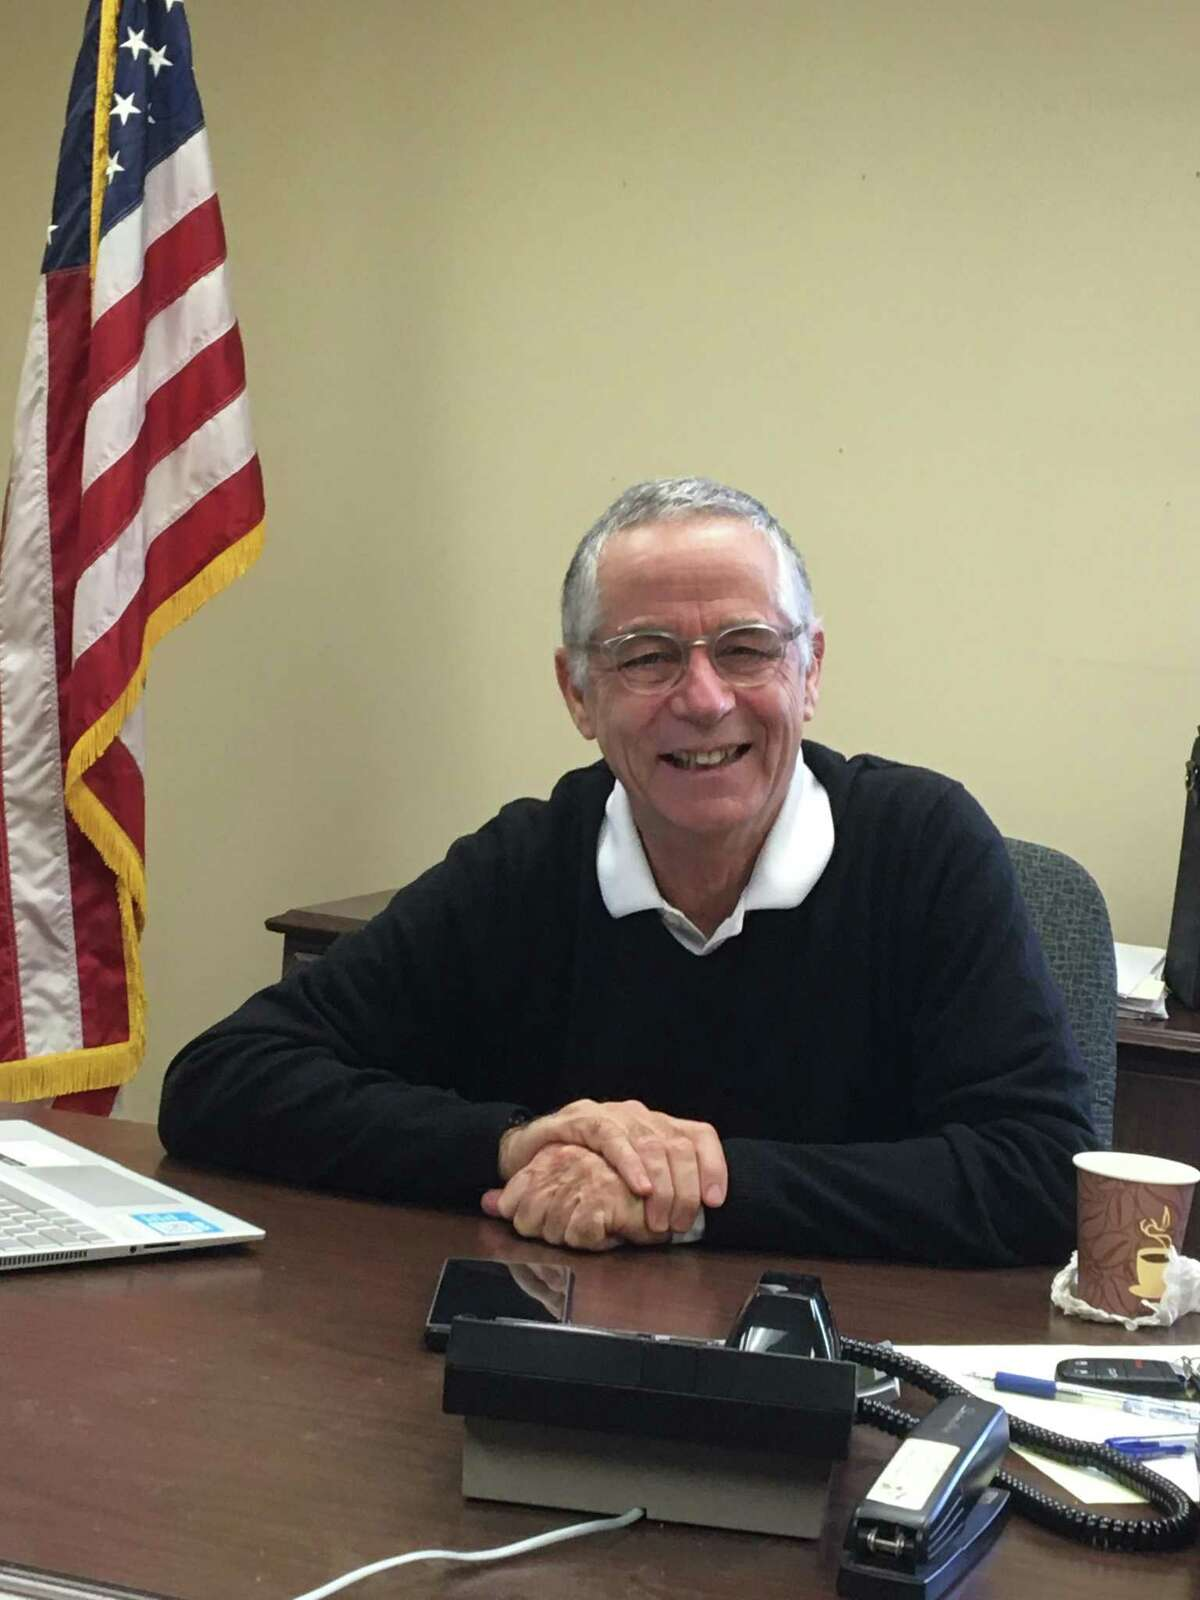 Outgoing East Haven Mayor Joe Maturo reflecting on his 18 years in office in his Town Hall office on Wednesday, Nov. 13, 2019.